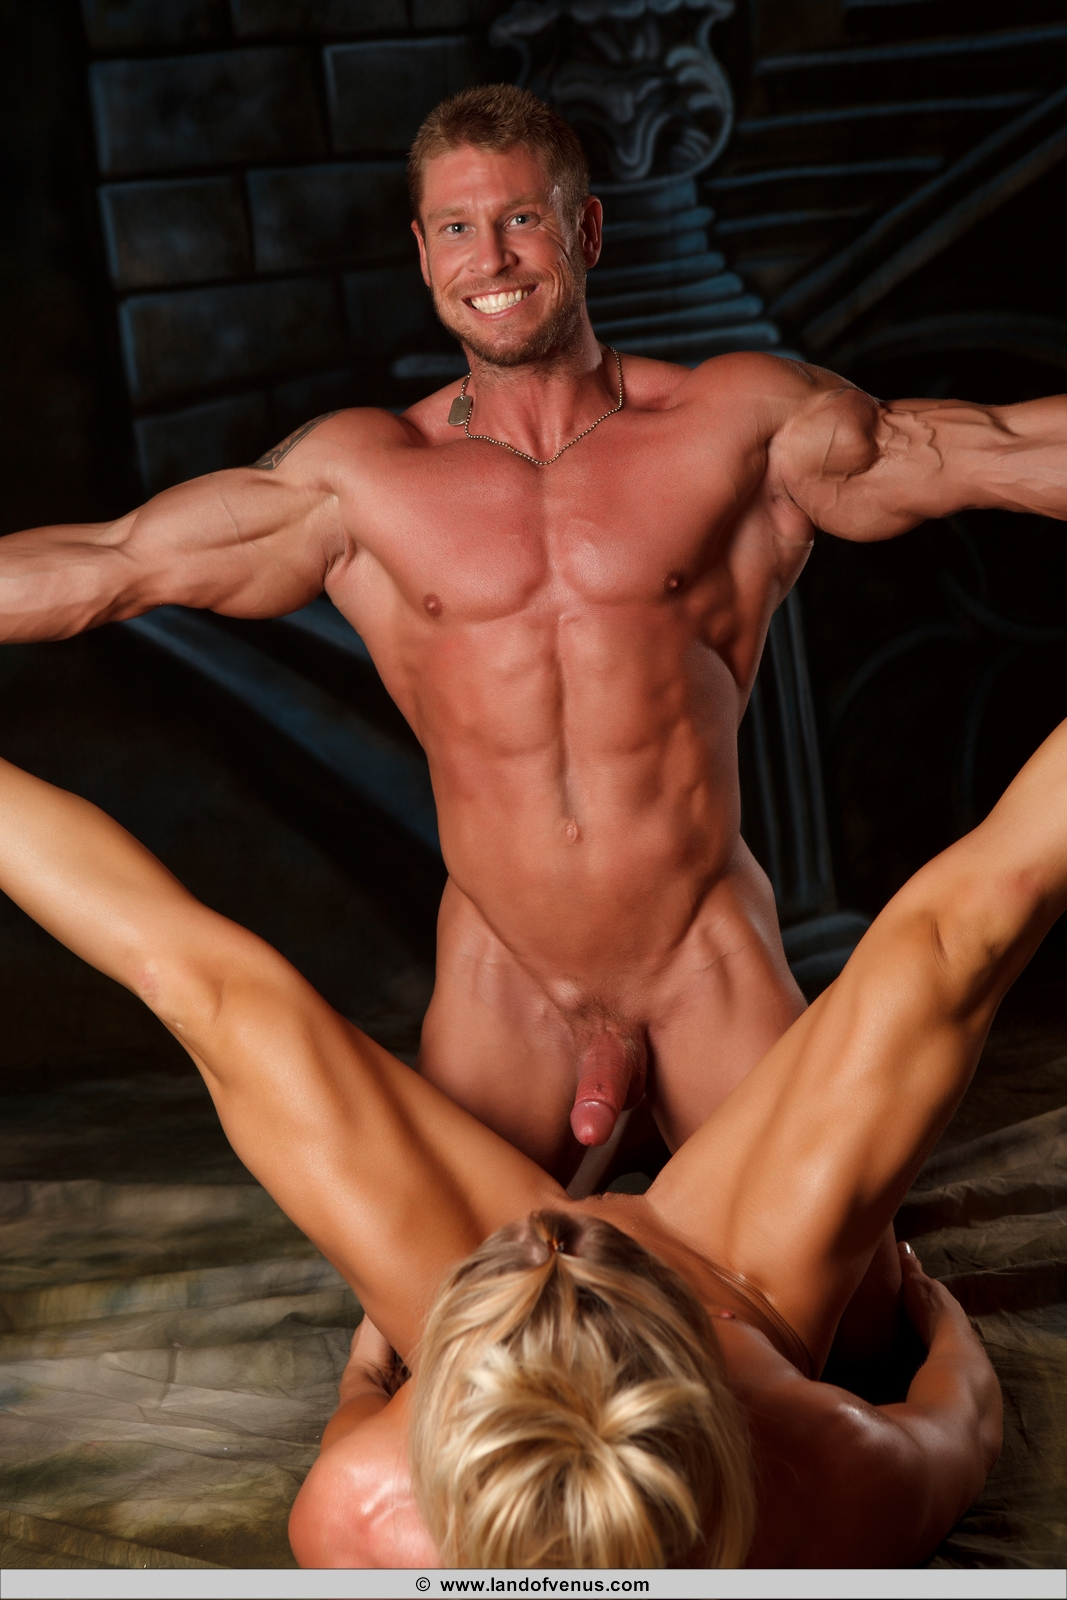 Nude Body Builder Sex Tube 45